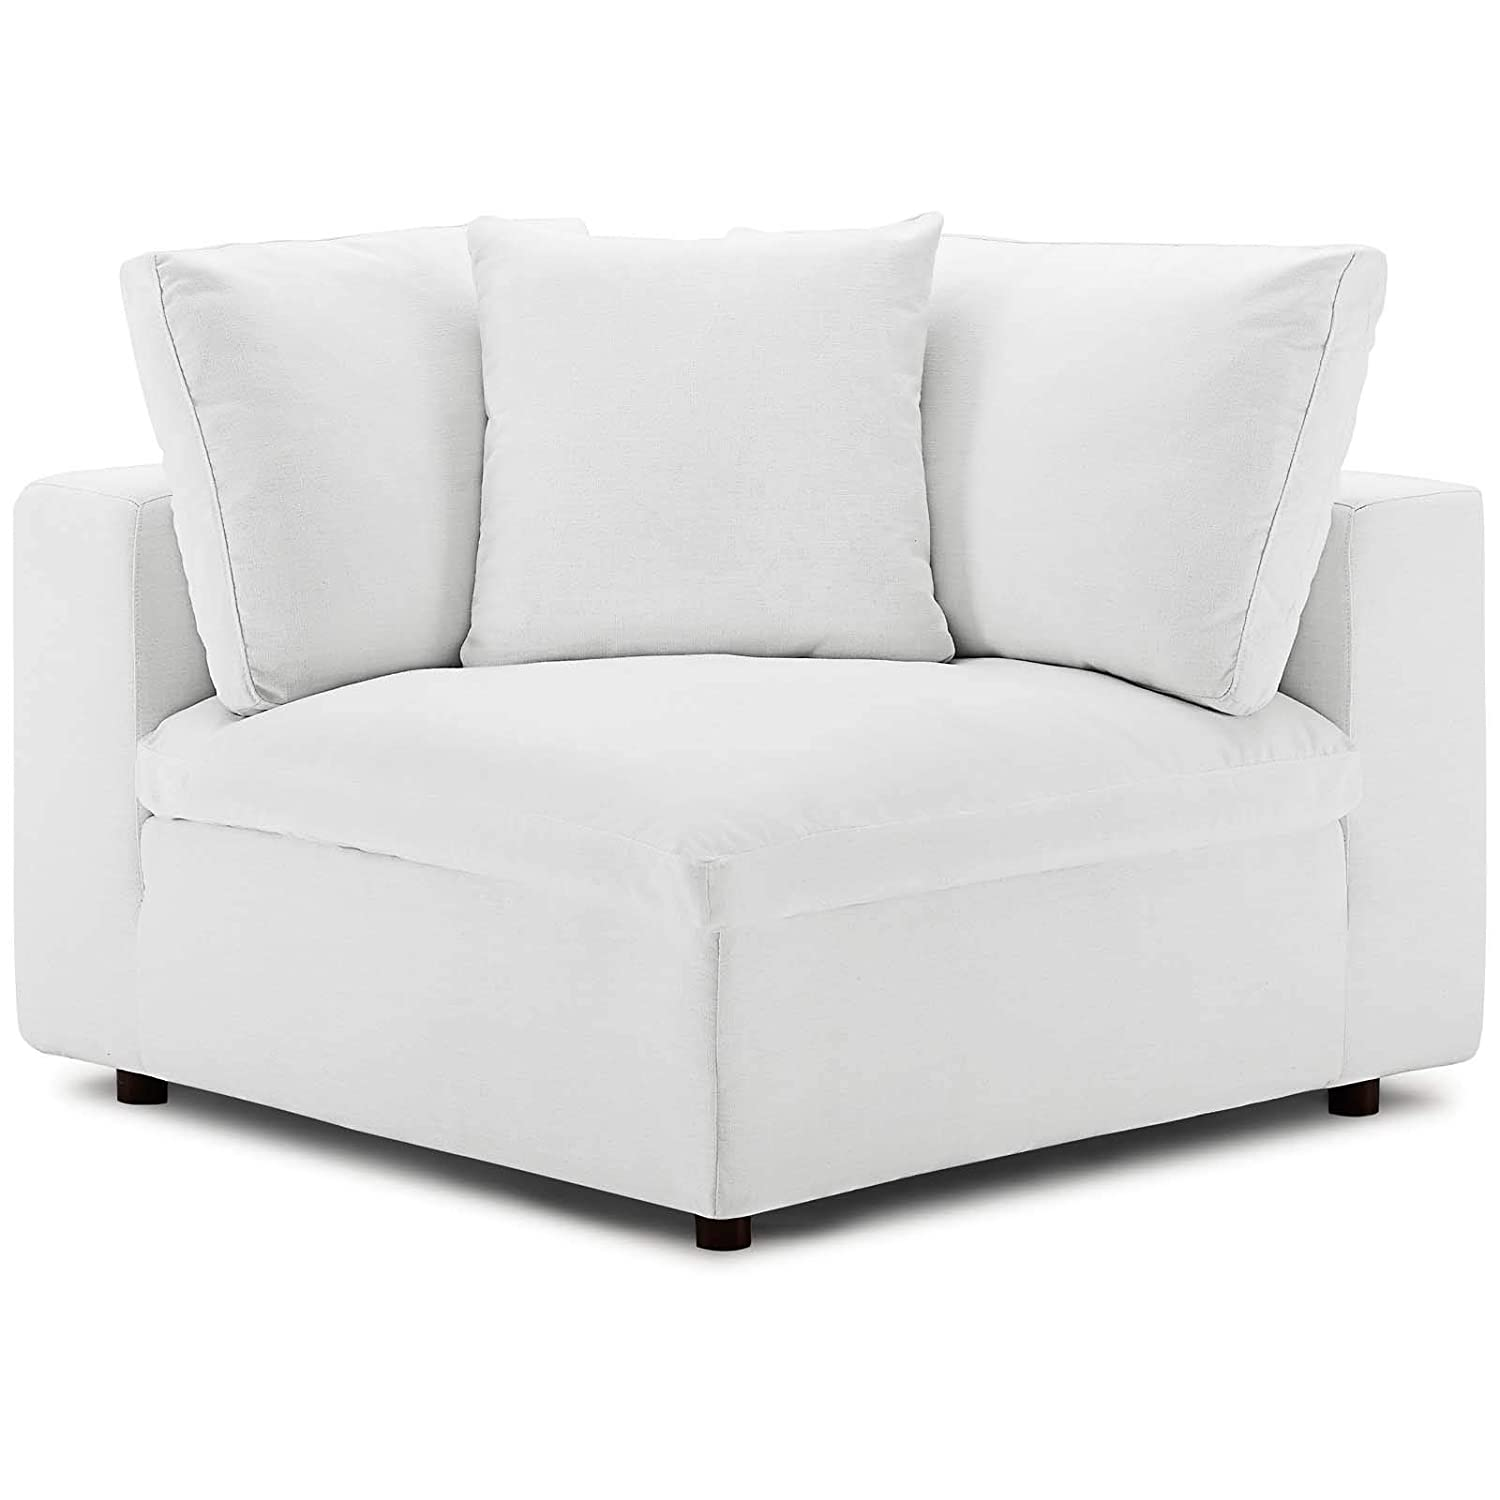 Peachy Modway Commix Down Filled Overstuffed Upholstered Sectional Sofa Corner Chair In White Caraccident5 Cool Chair Designs And Ideas Caraccident5Info